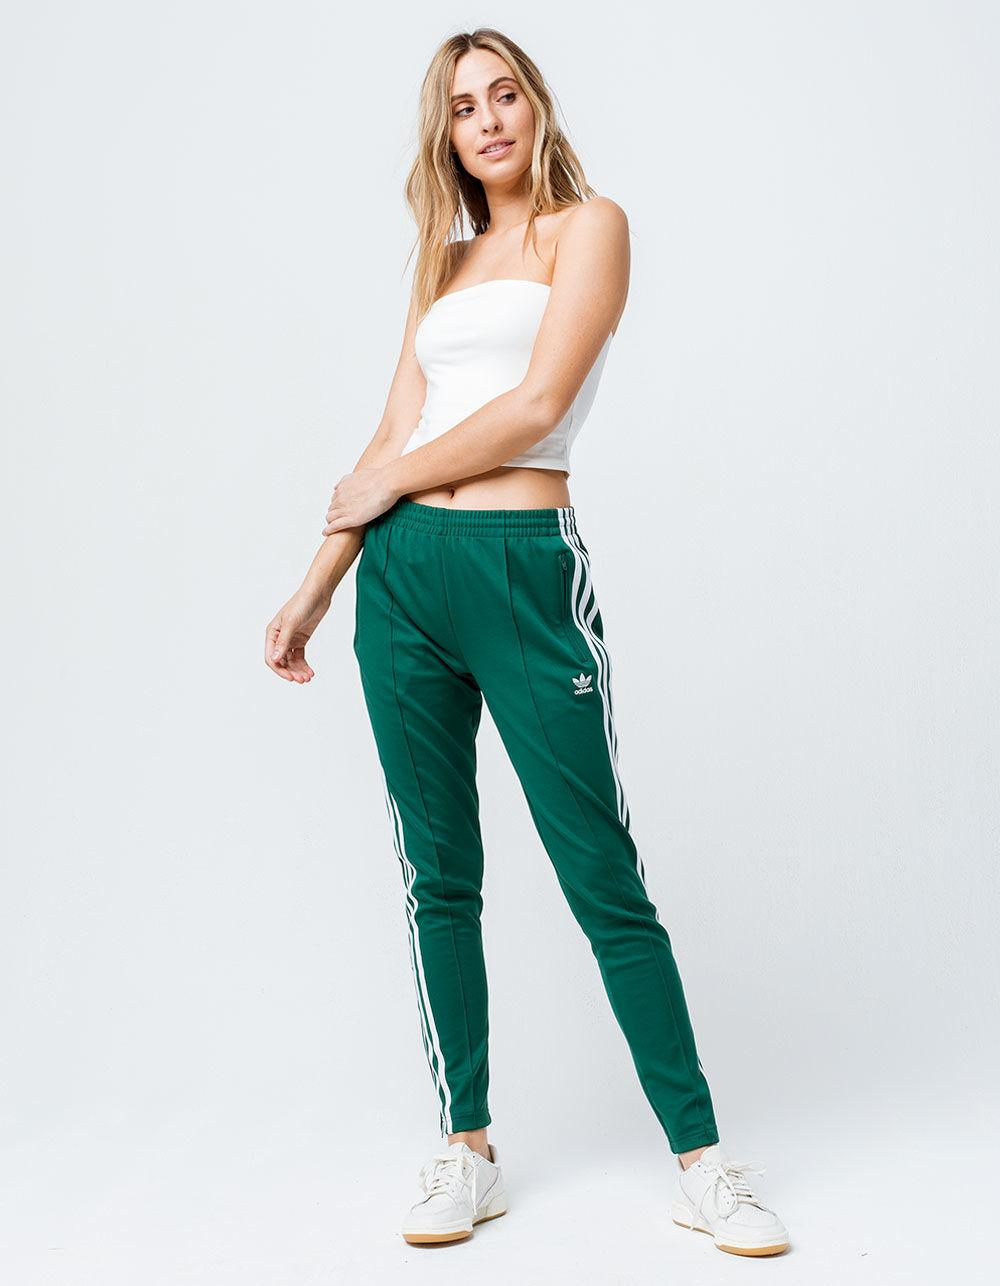 adidas SST Track Pants in 2019 | Pants, Adidas, Fashion